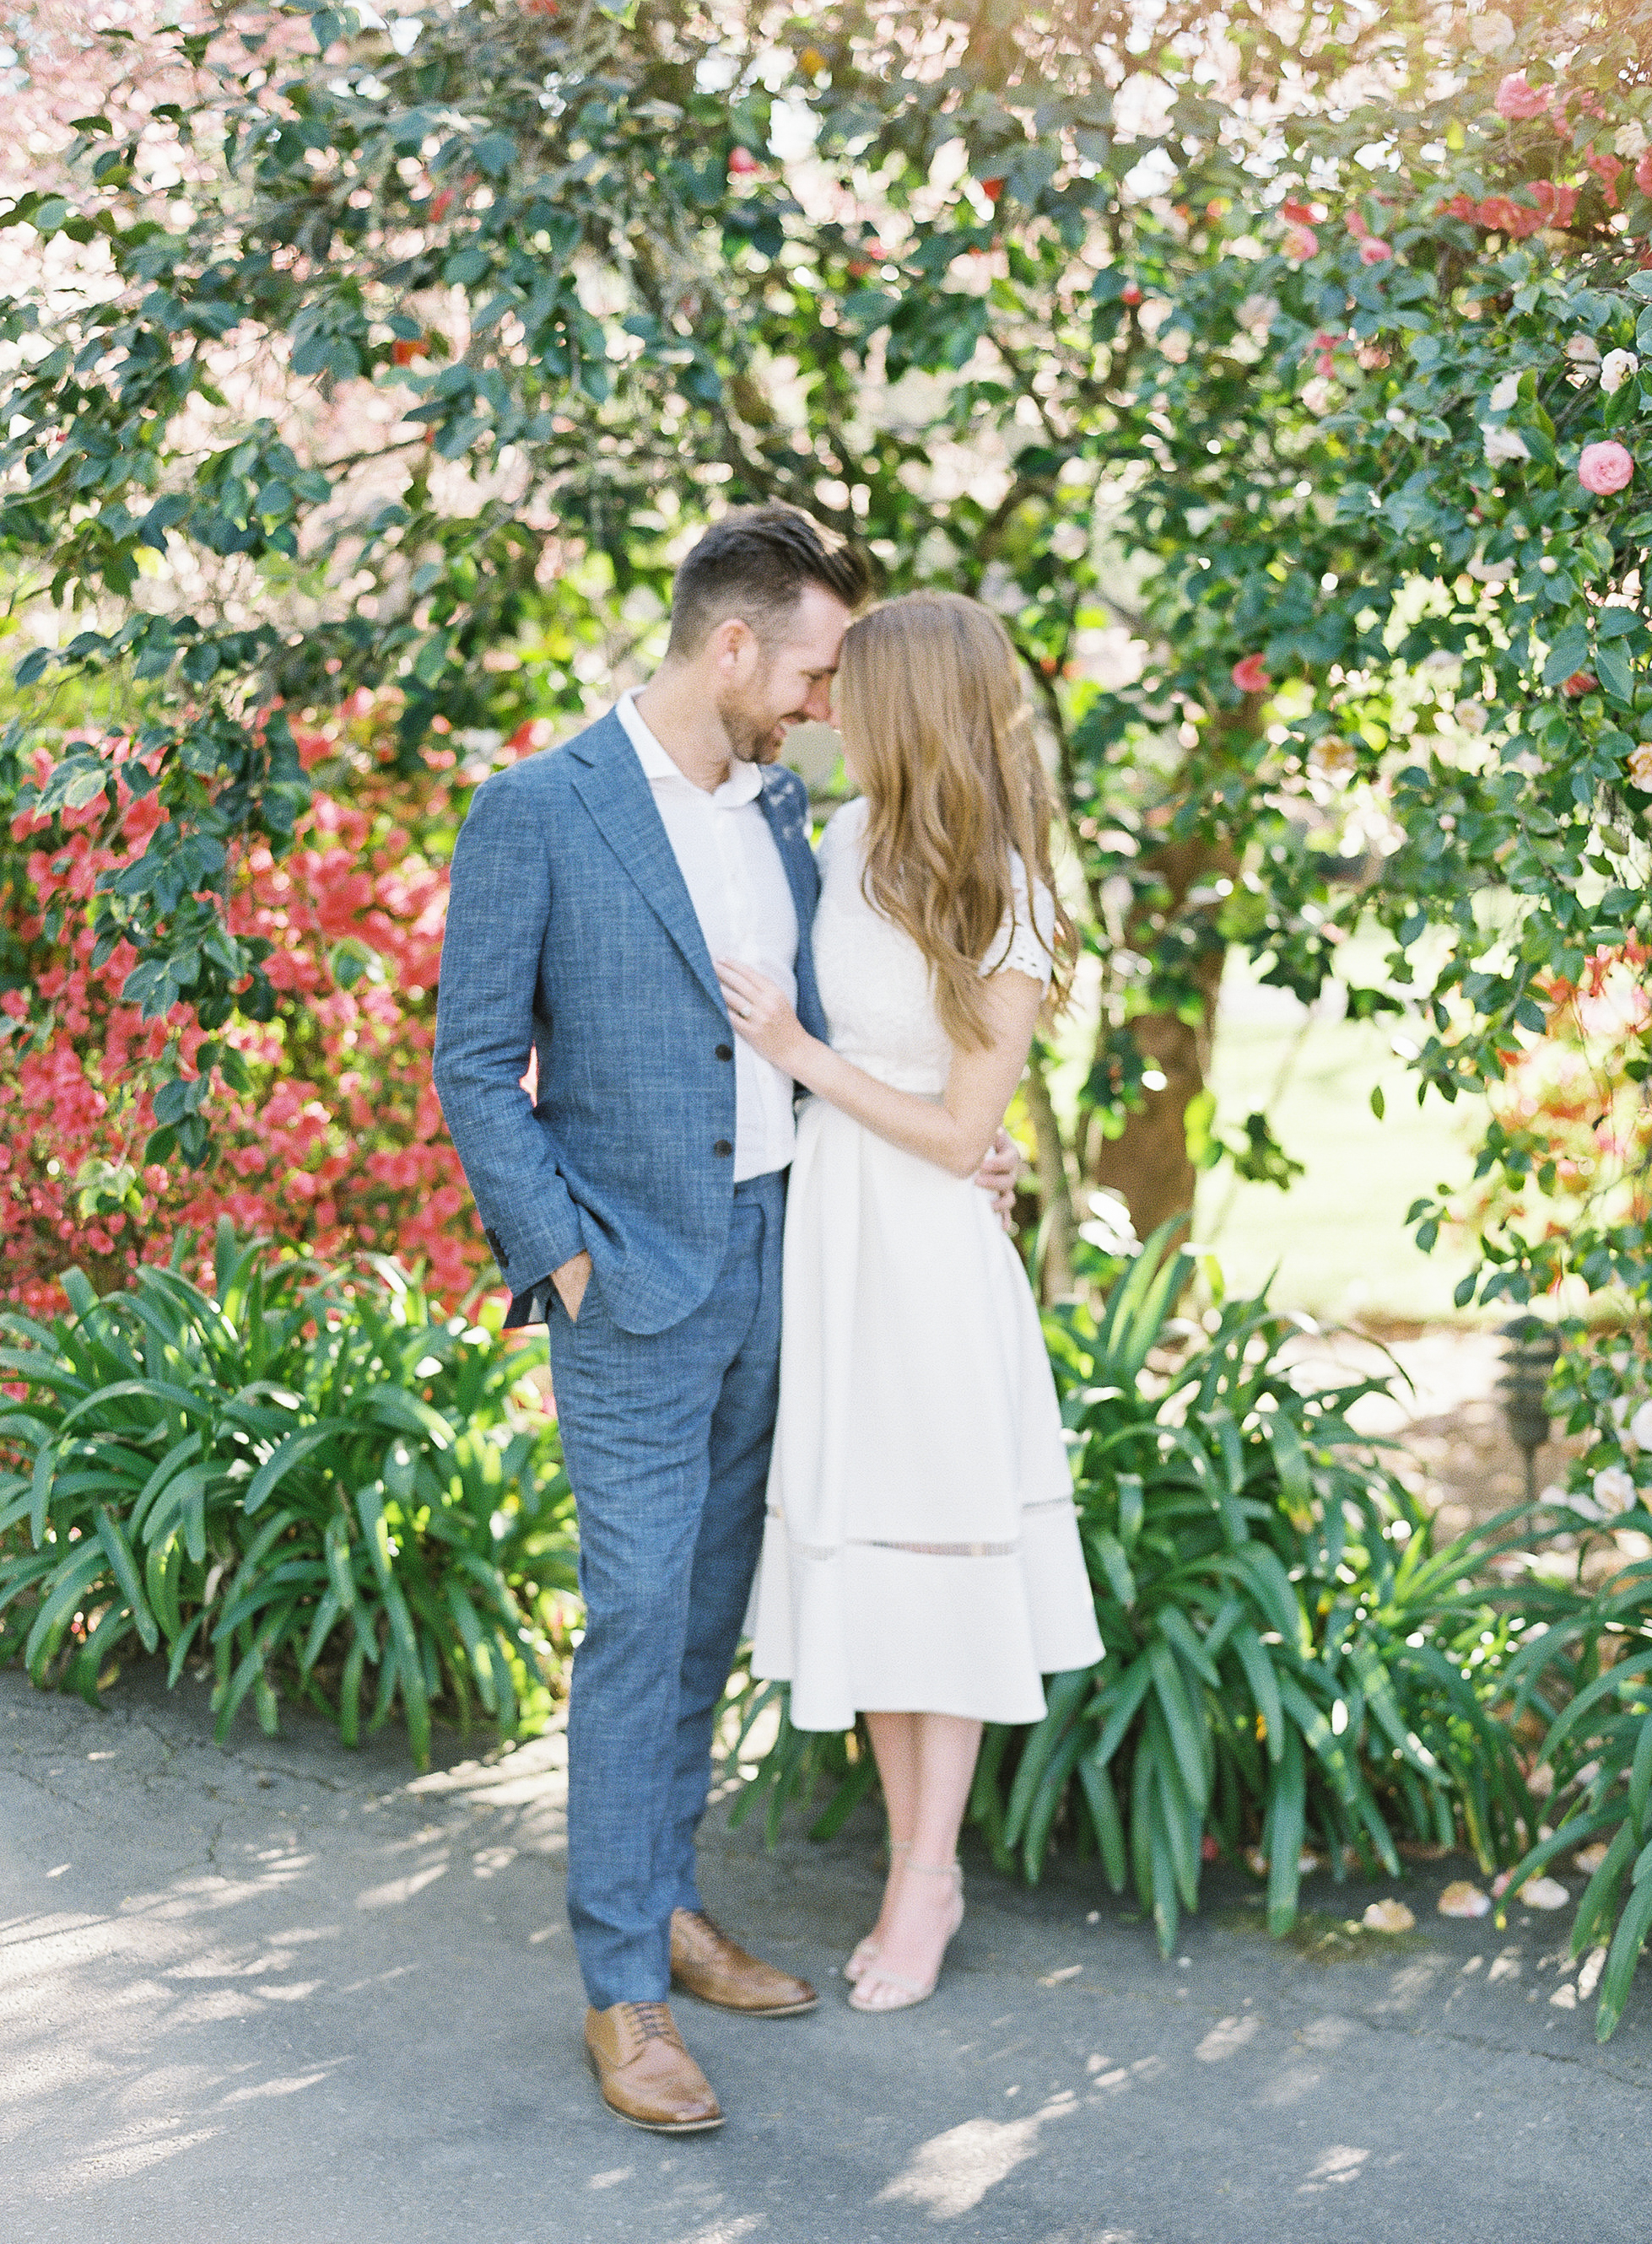 Meghan Mehan Photography - Napa Engagement Session 014.jpg